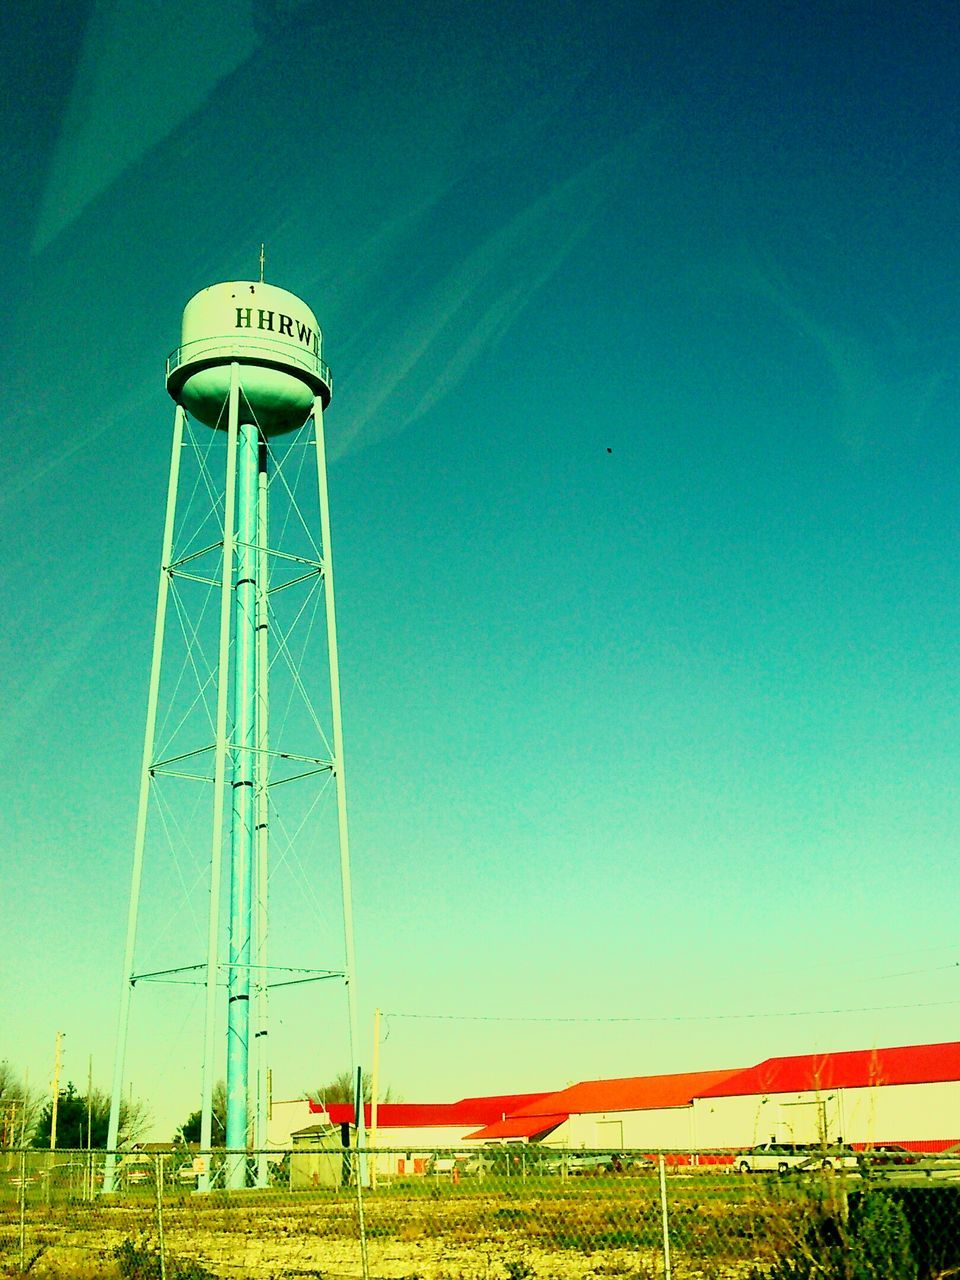 architecture, built structure, storage tank, day, water conservation, no people, water tower - storage tank, outdoors, blue, clear sky, nature, sky